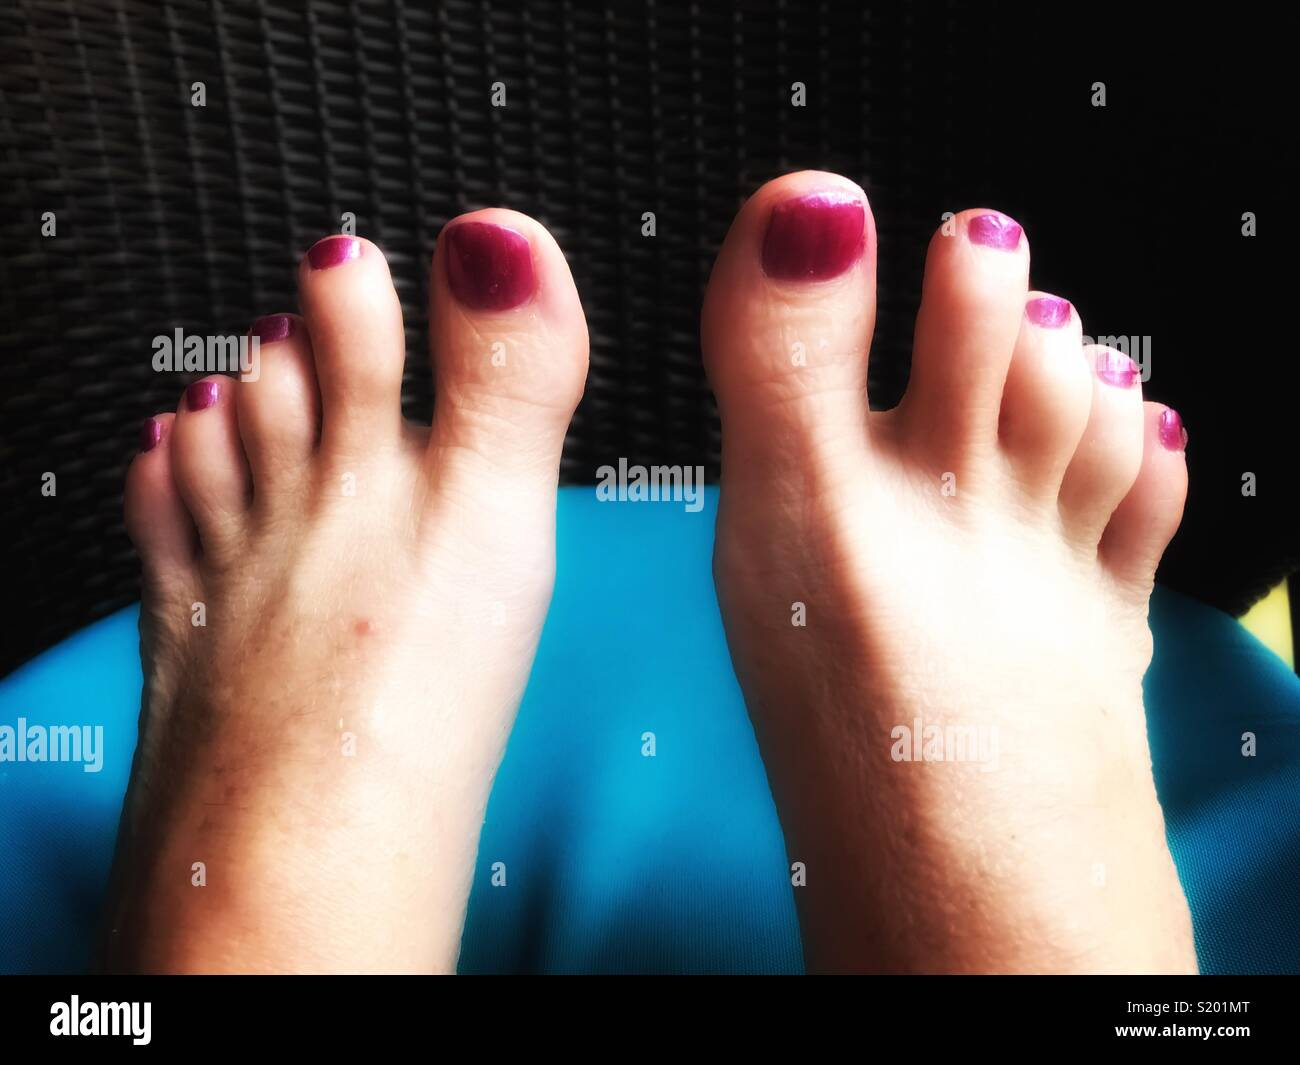 Bali holiday feet, wrinkles and painted nails Stock Photo: 311017304 ...